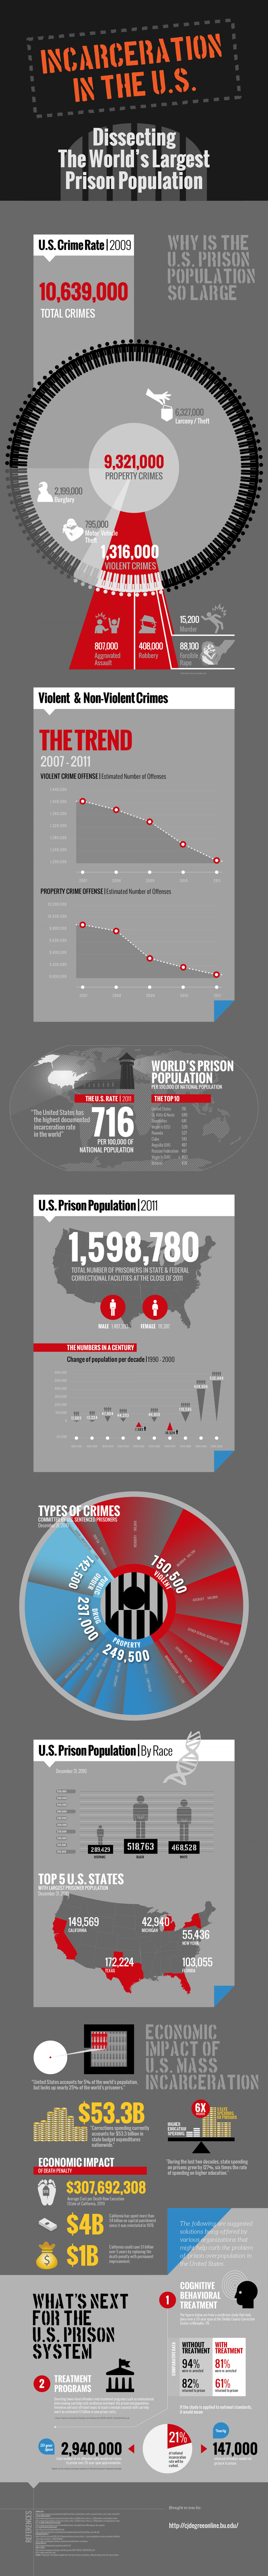 Incarceration In The U.S. Infographic